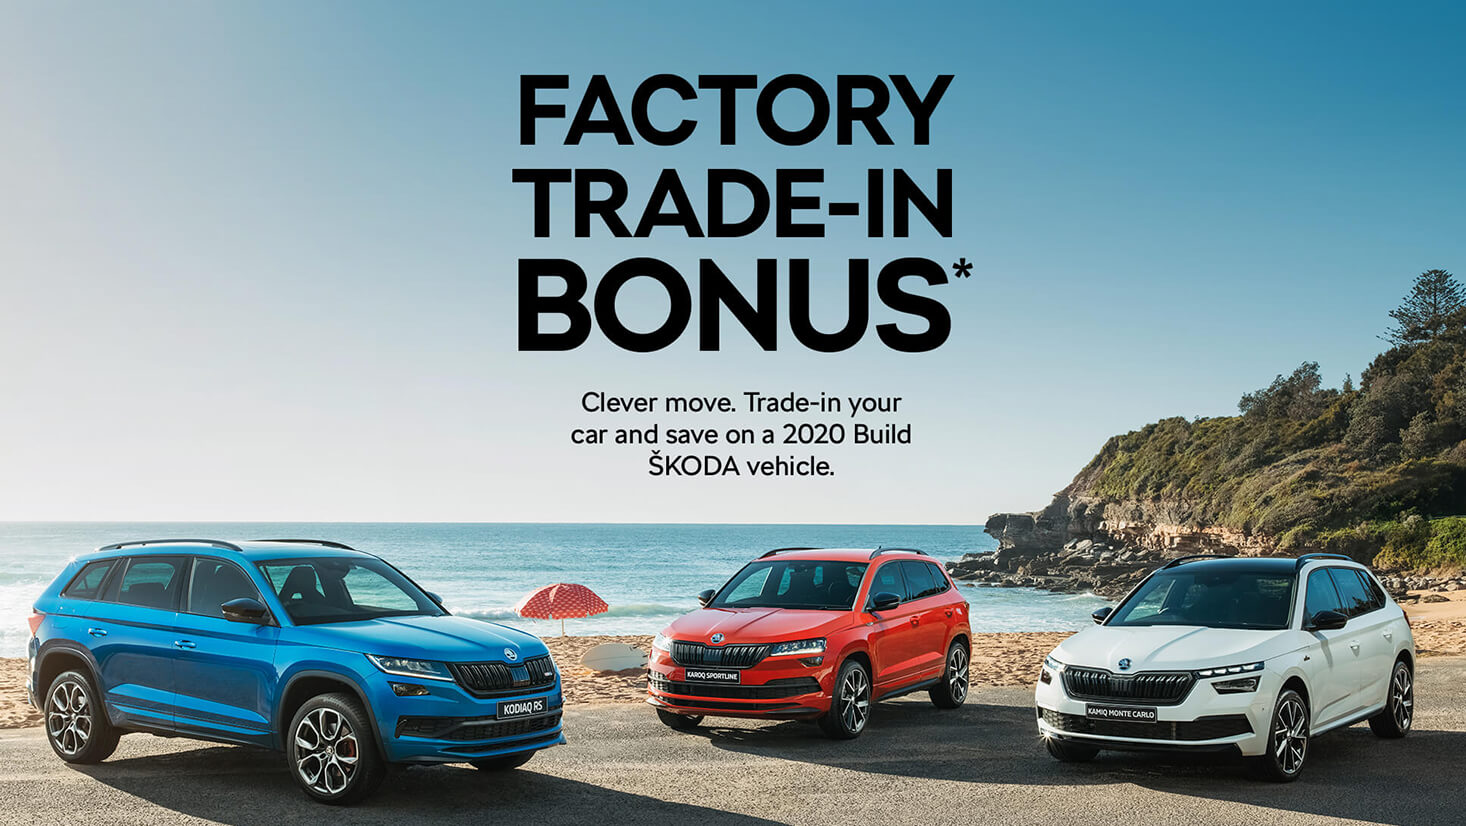 FACTORY TRADE-IN BONUS* <br>Clever move. Trade-in your car and save on 2020 Build ŠKODA  vehicle.